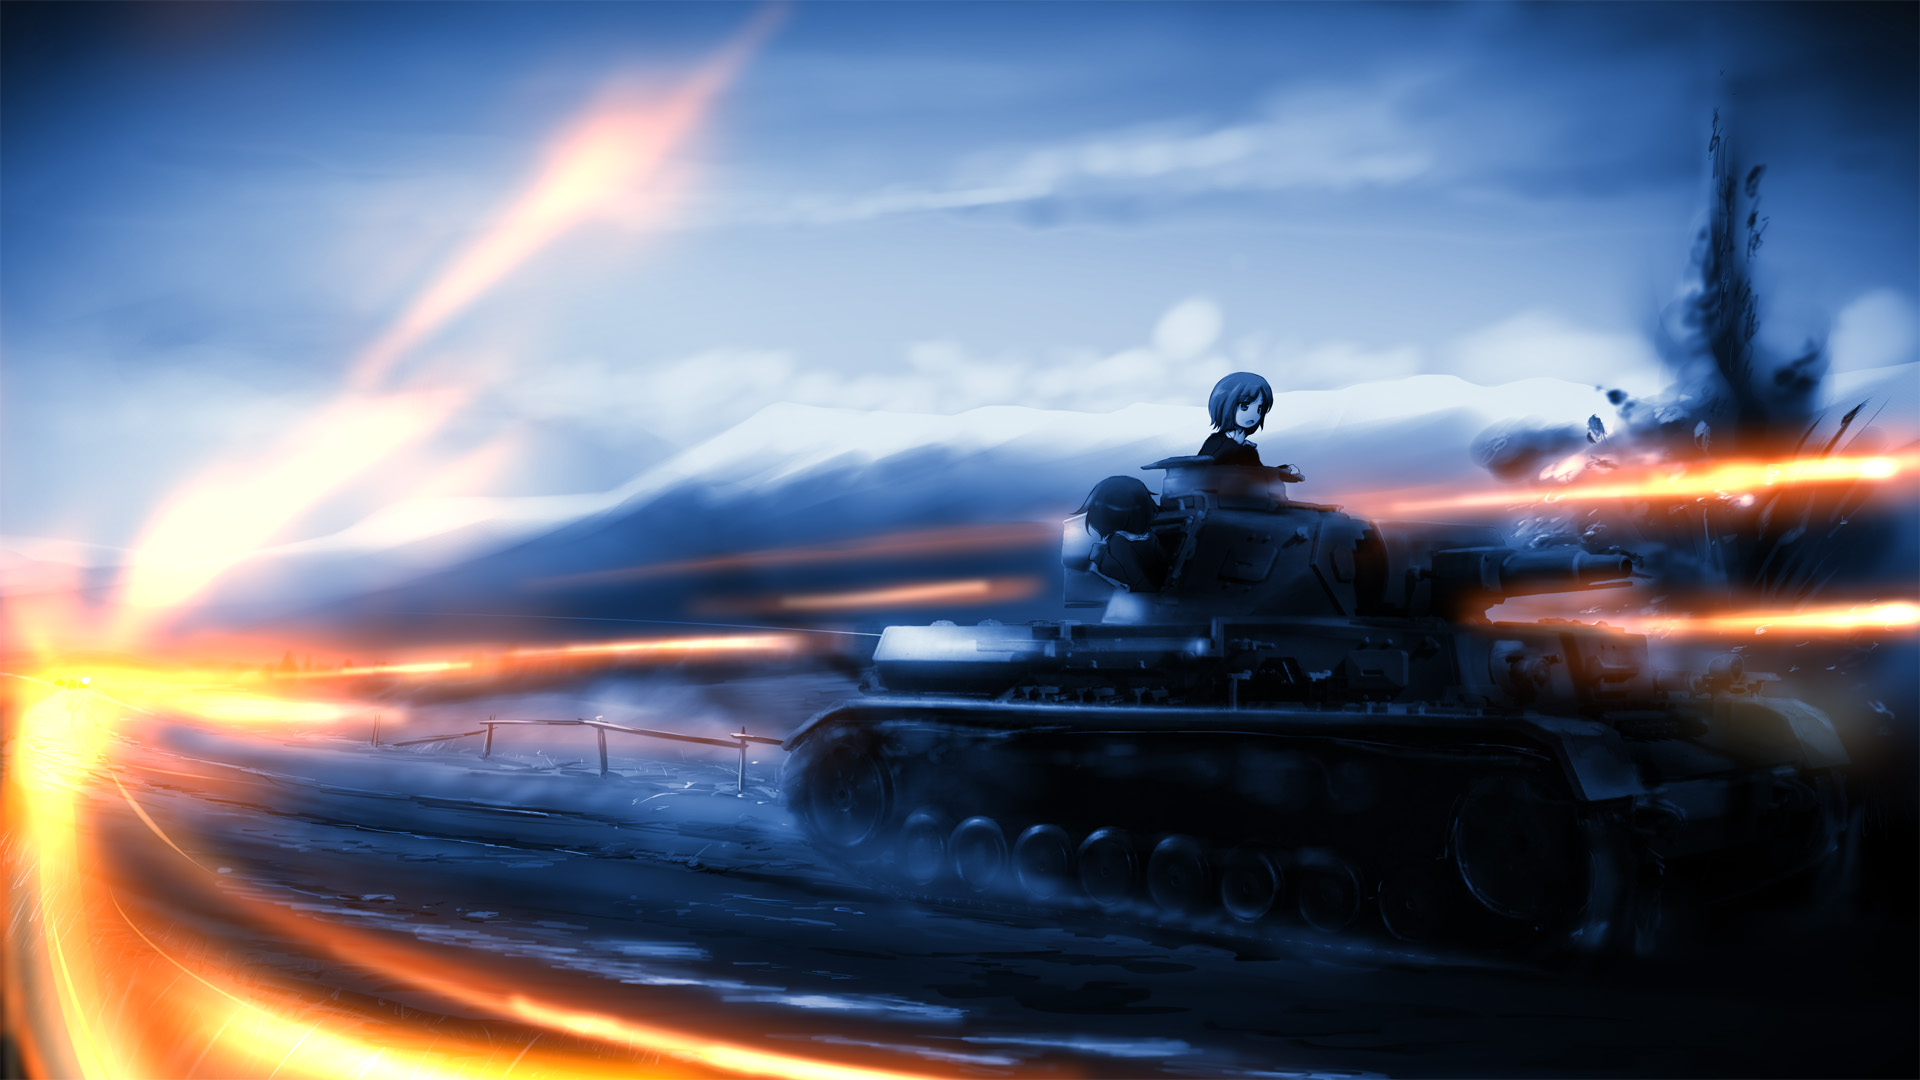 Girls Und Panzer Hd Wallpaper Girls Und Panzer Hd Wallpaper 1361069 Zerochan Anime